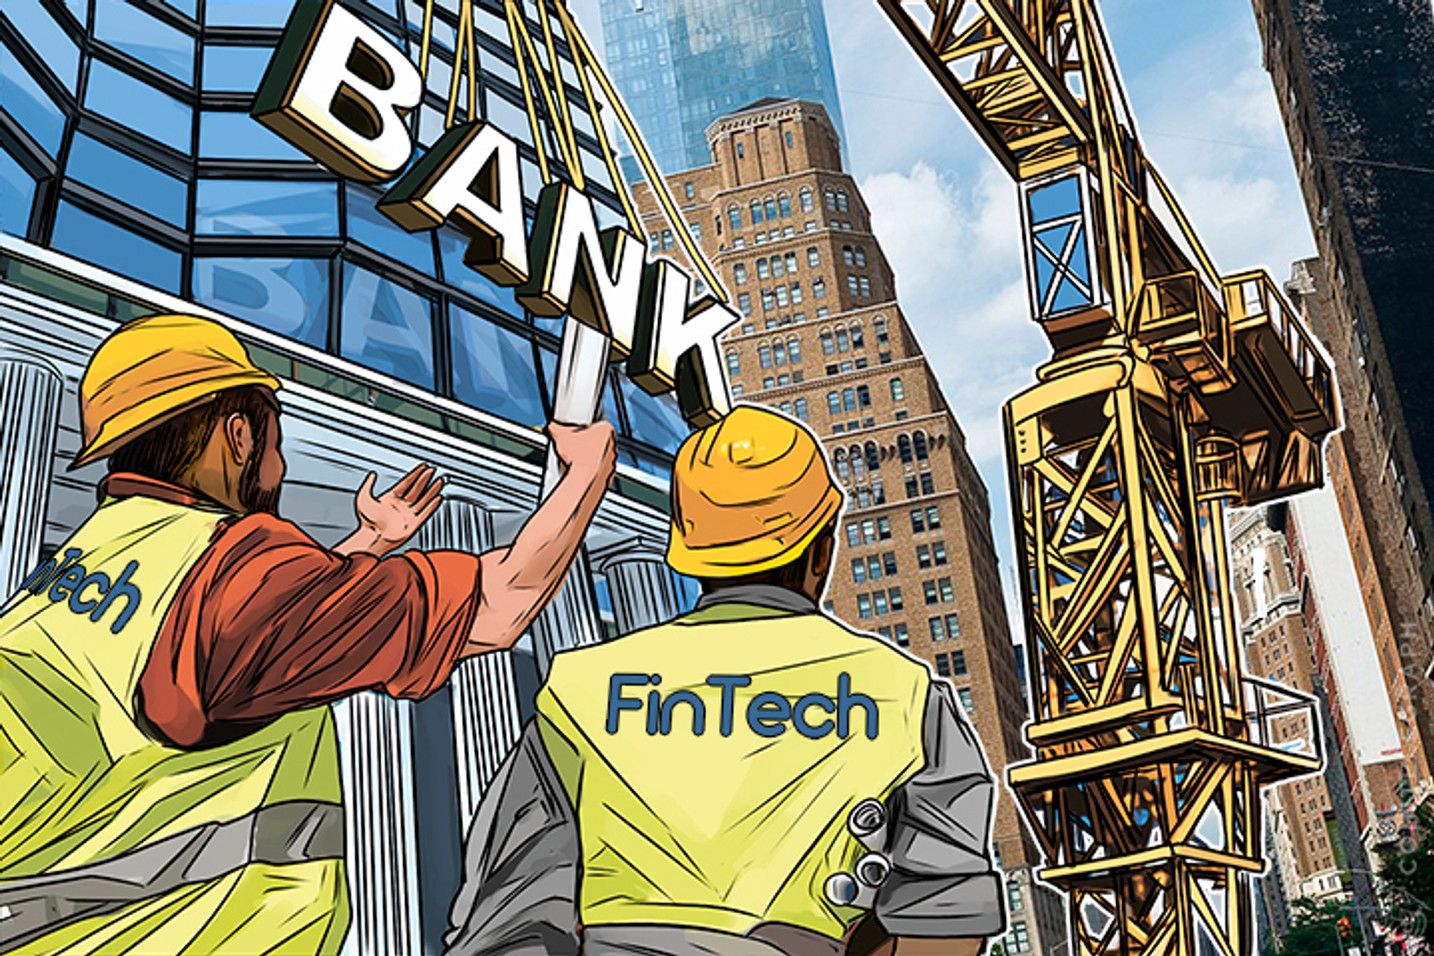 Fintech Companies Disrupting Finance, Creating Bank of Tomorrow